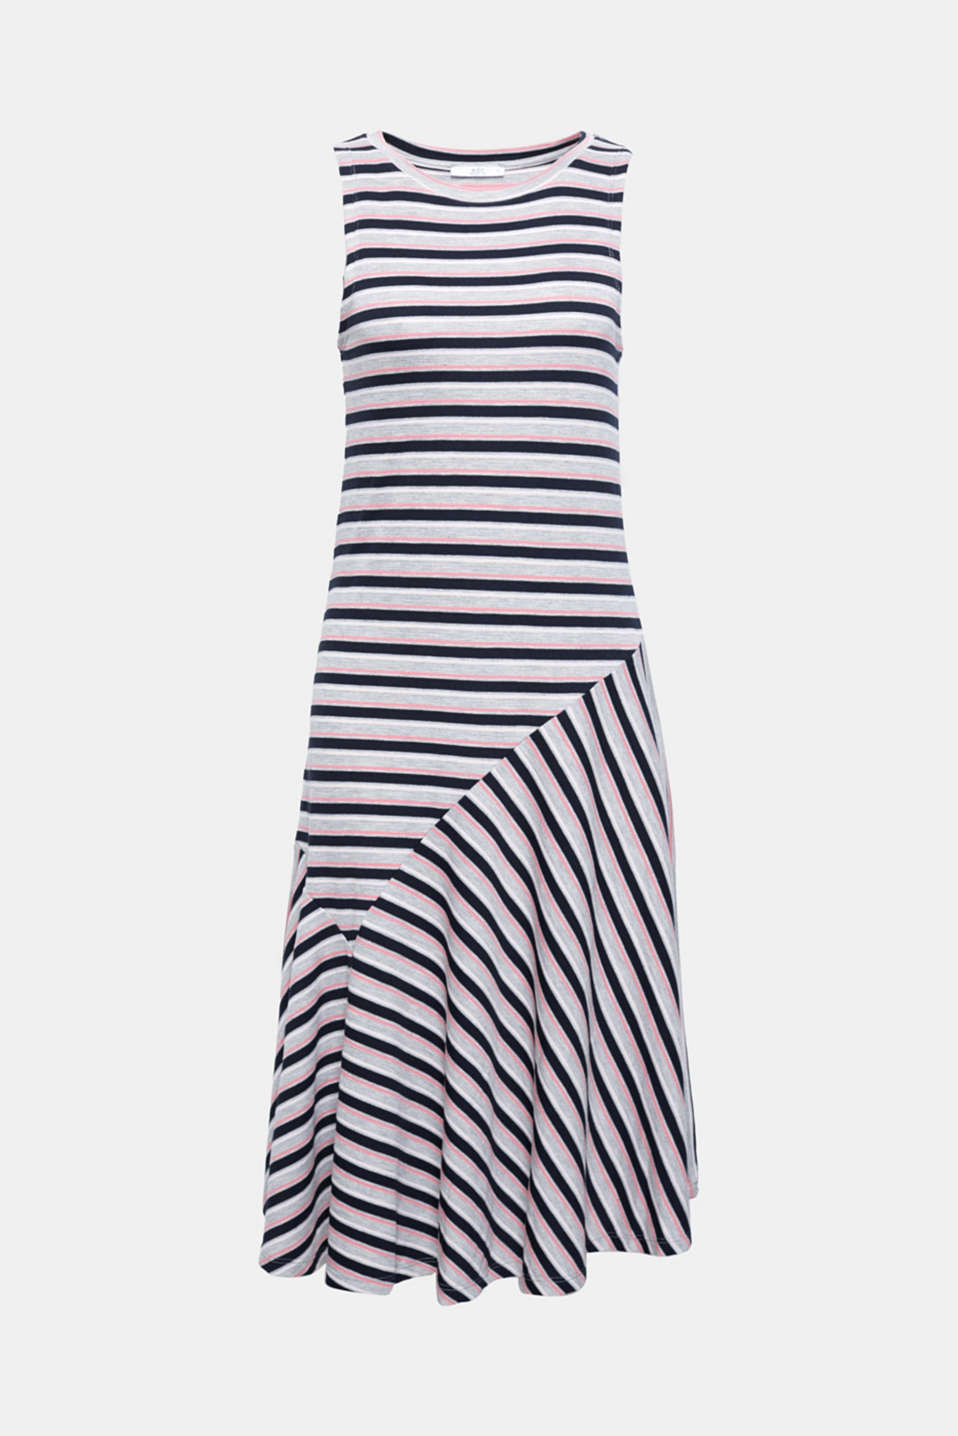 This pretty, striped ribbed jersey dress with a flared flounce hem is the perfect all-rounder for summery daytime looks.